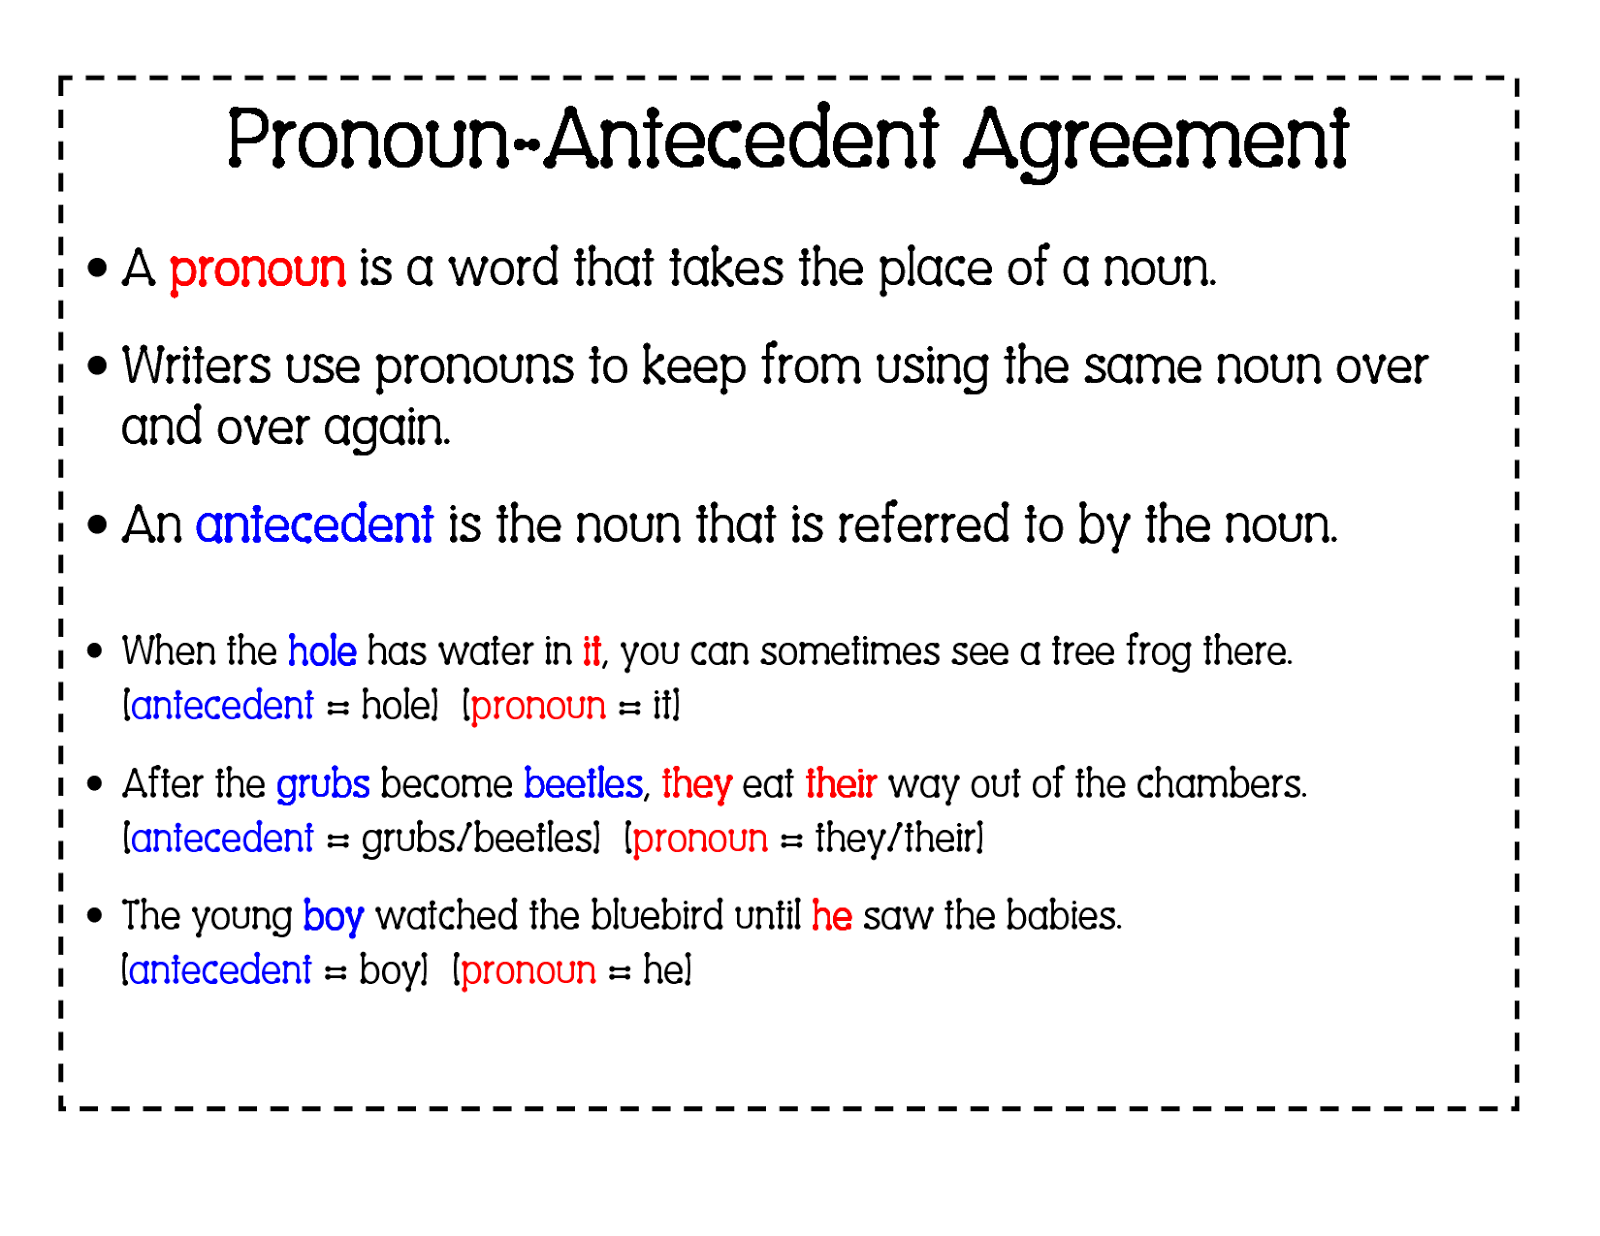 Pronouns and Antecedents | Pronoun Agreement Worksheet